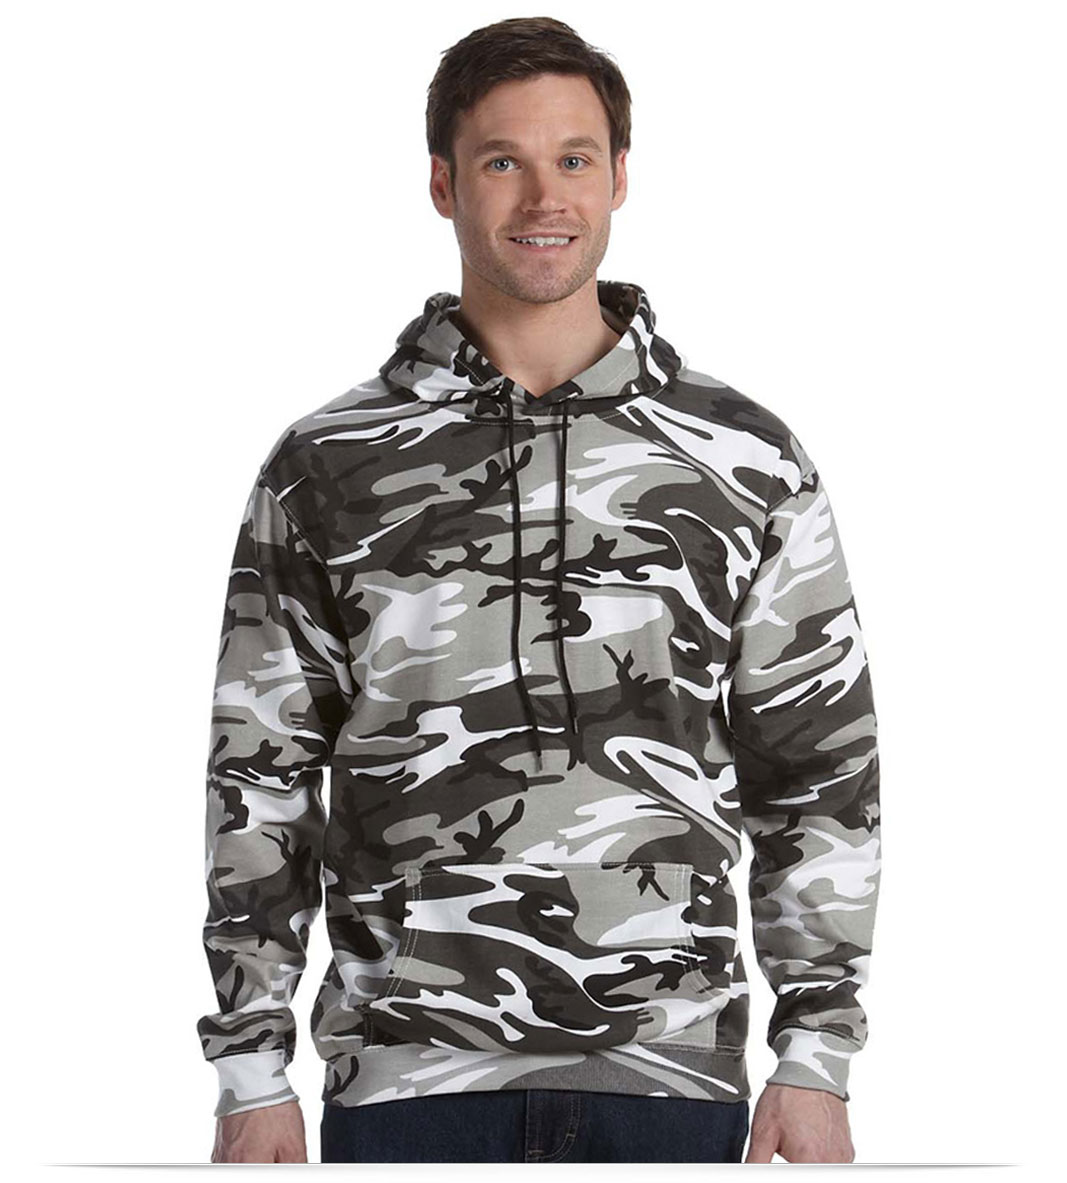 Design Code Five Camouflage Pullover Hooded Sweatshirt